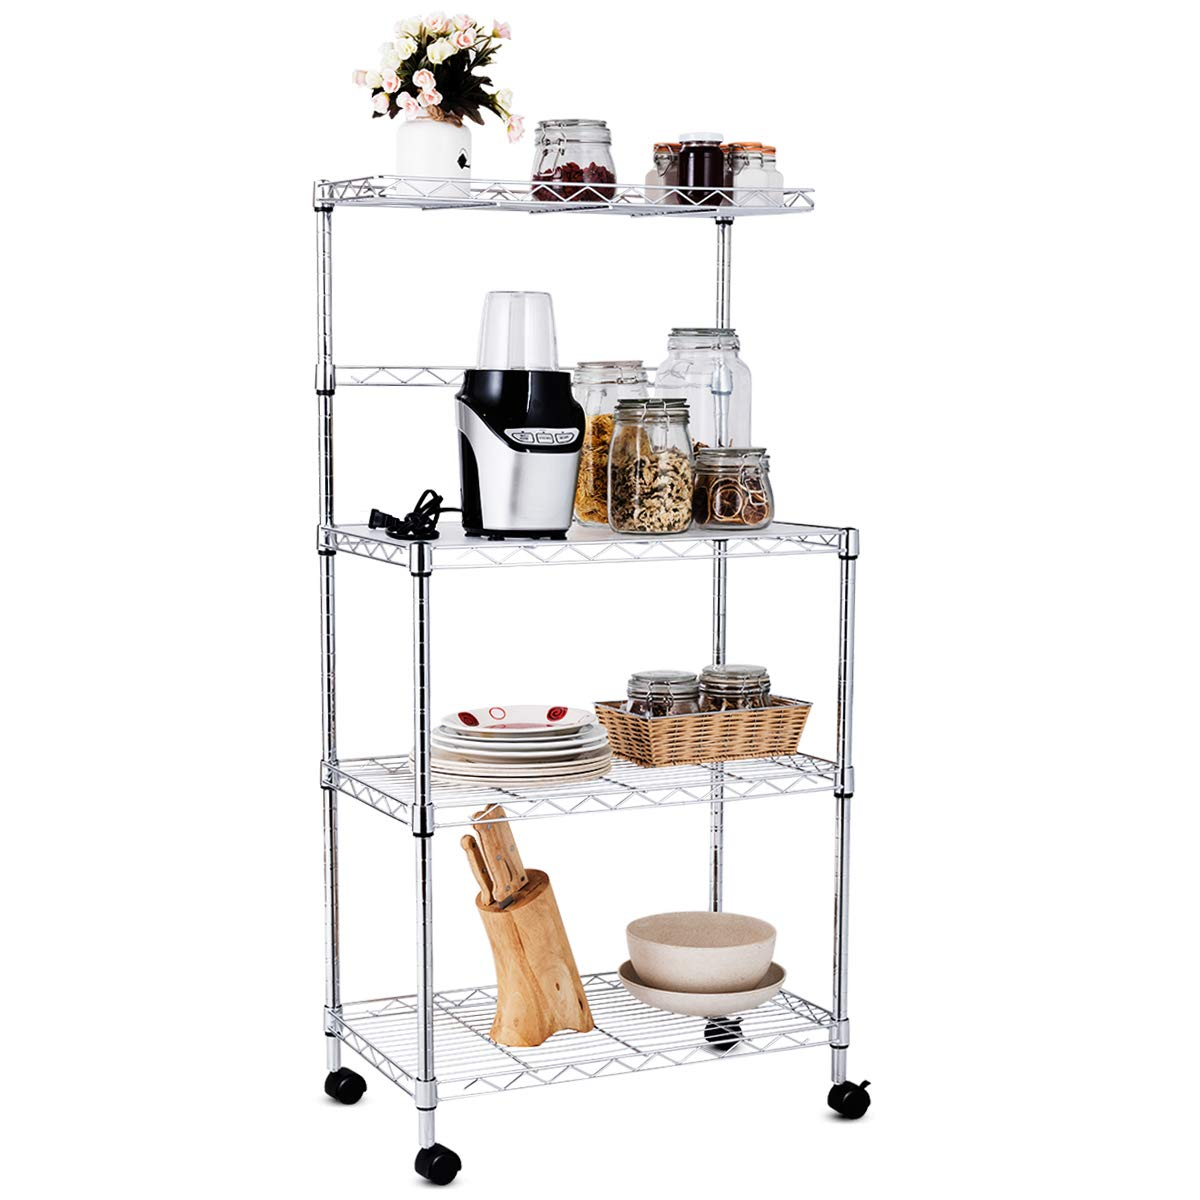 Giantex 4-Tier Baker's Rack Microwave Rack Free Standing Storage Shelf Microwave Oven Stand Kitchen Cart Storage Organizer Shelf Workstation w/Adjustable Shelf and Wheels